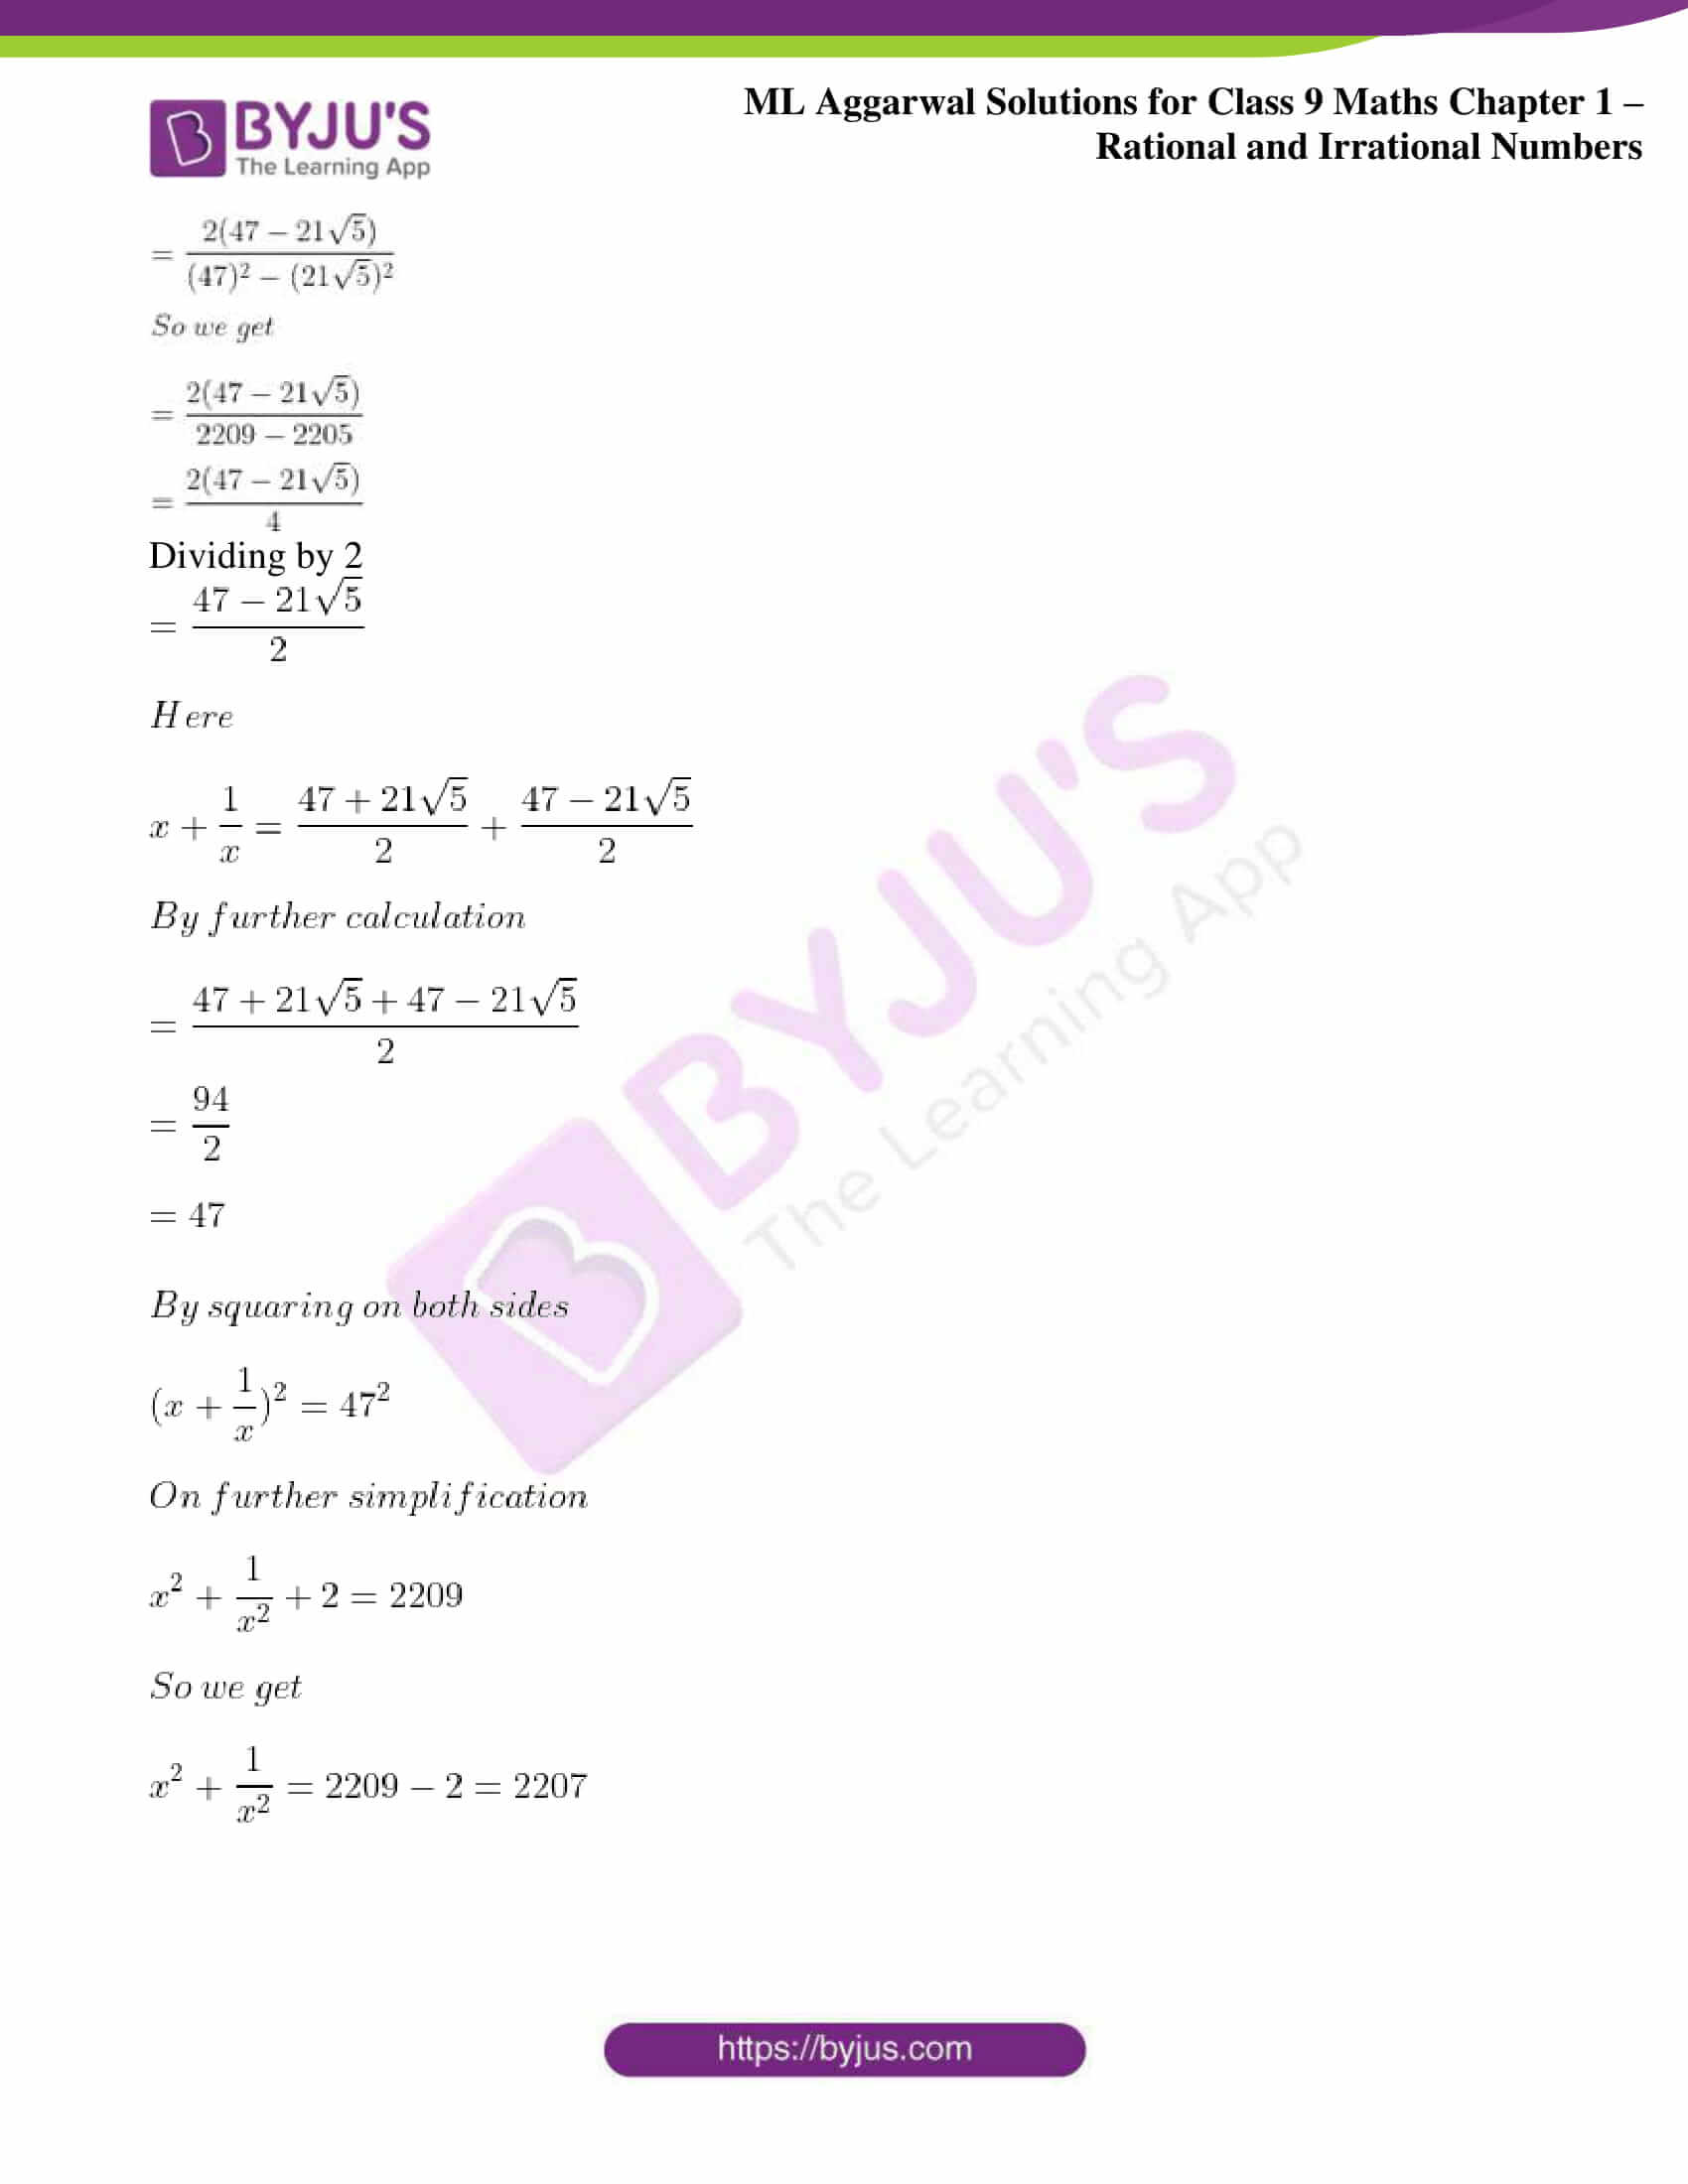 ml aggarwal solutions for class 9 maths chapter 1 75